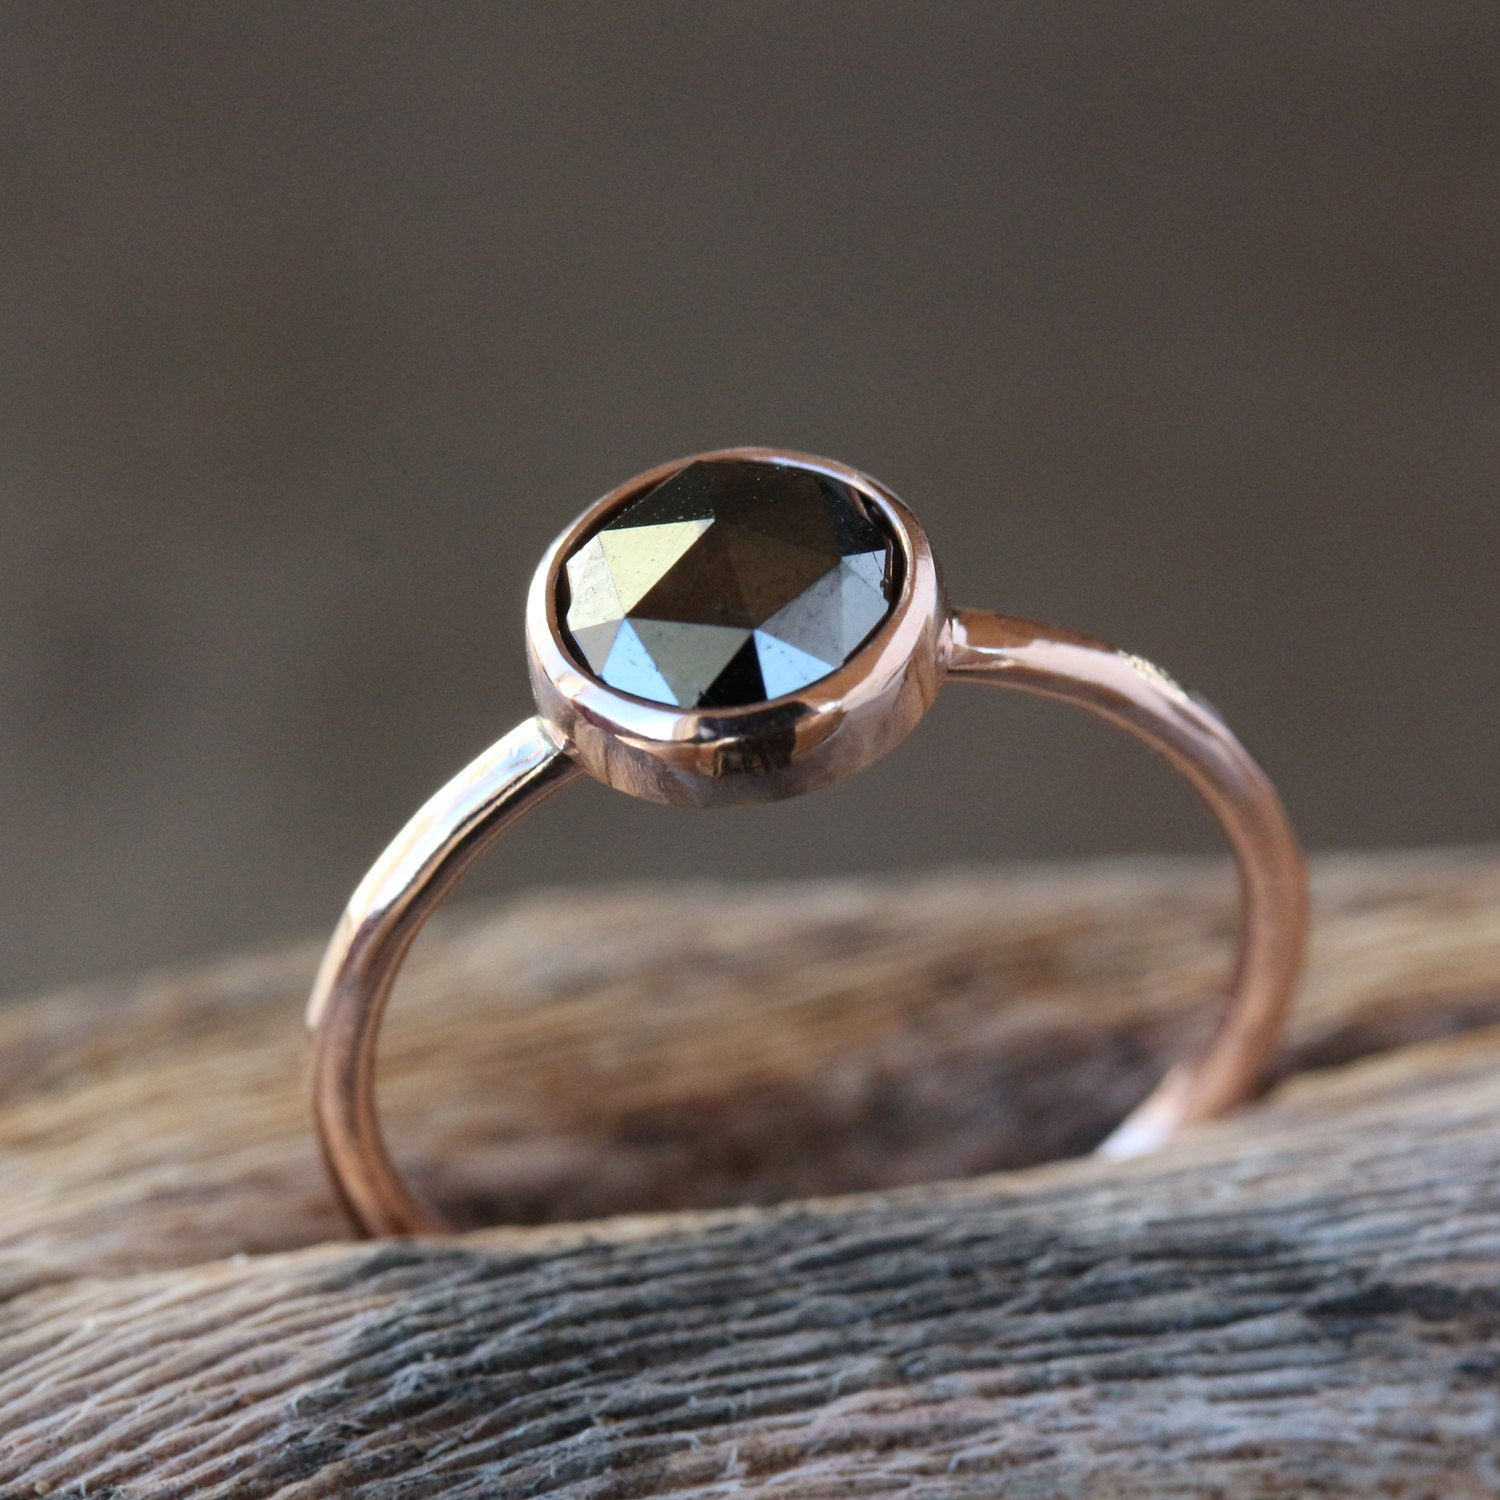 pin engagement the onyx ditch rings a alternative heaven featuring moonstone diamond opals colored and stone